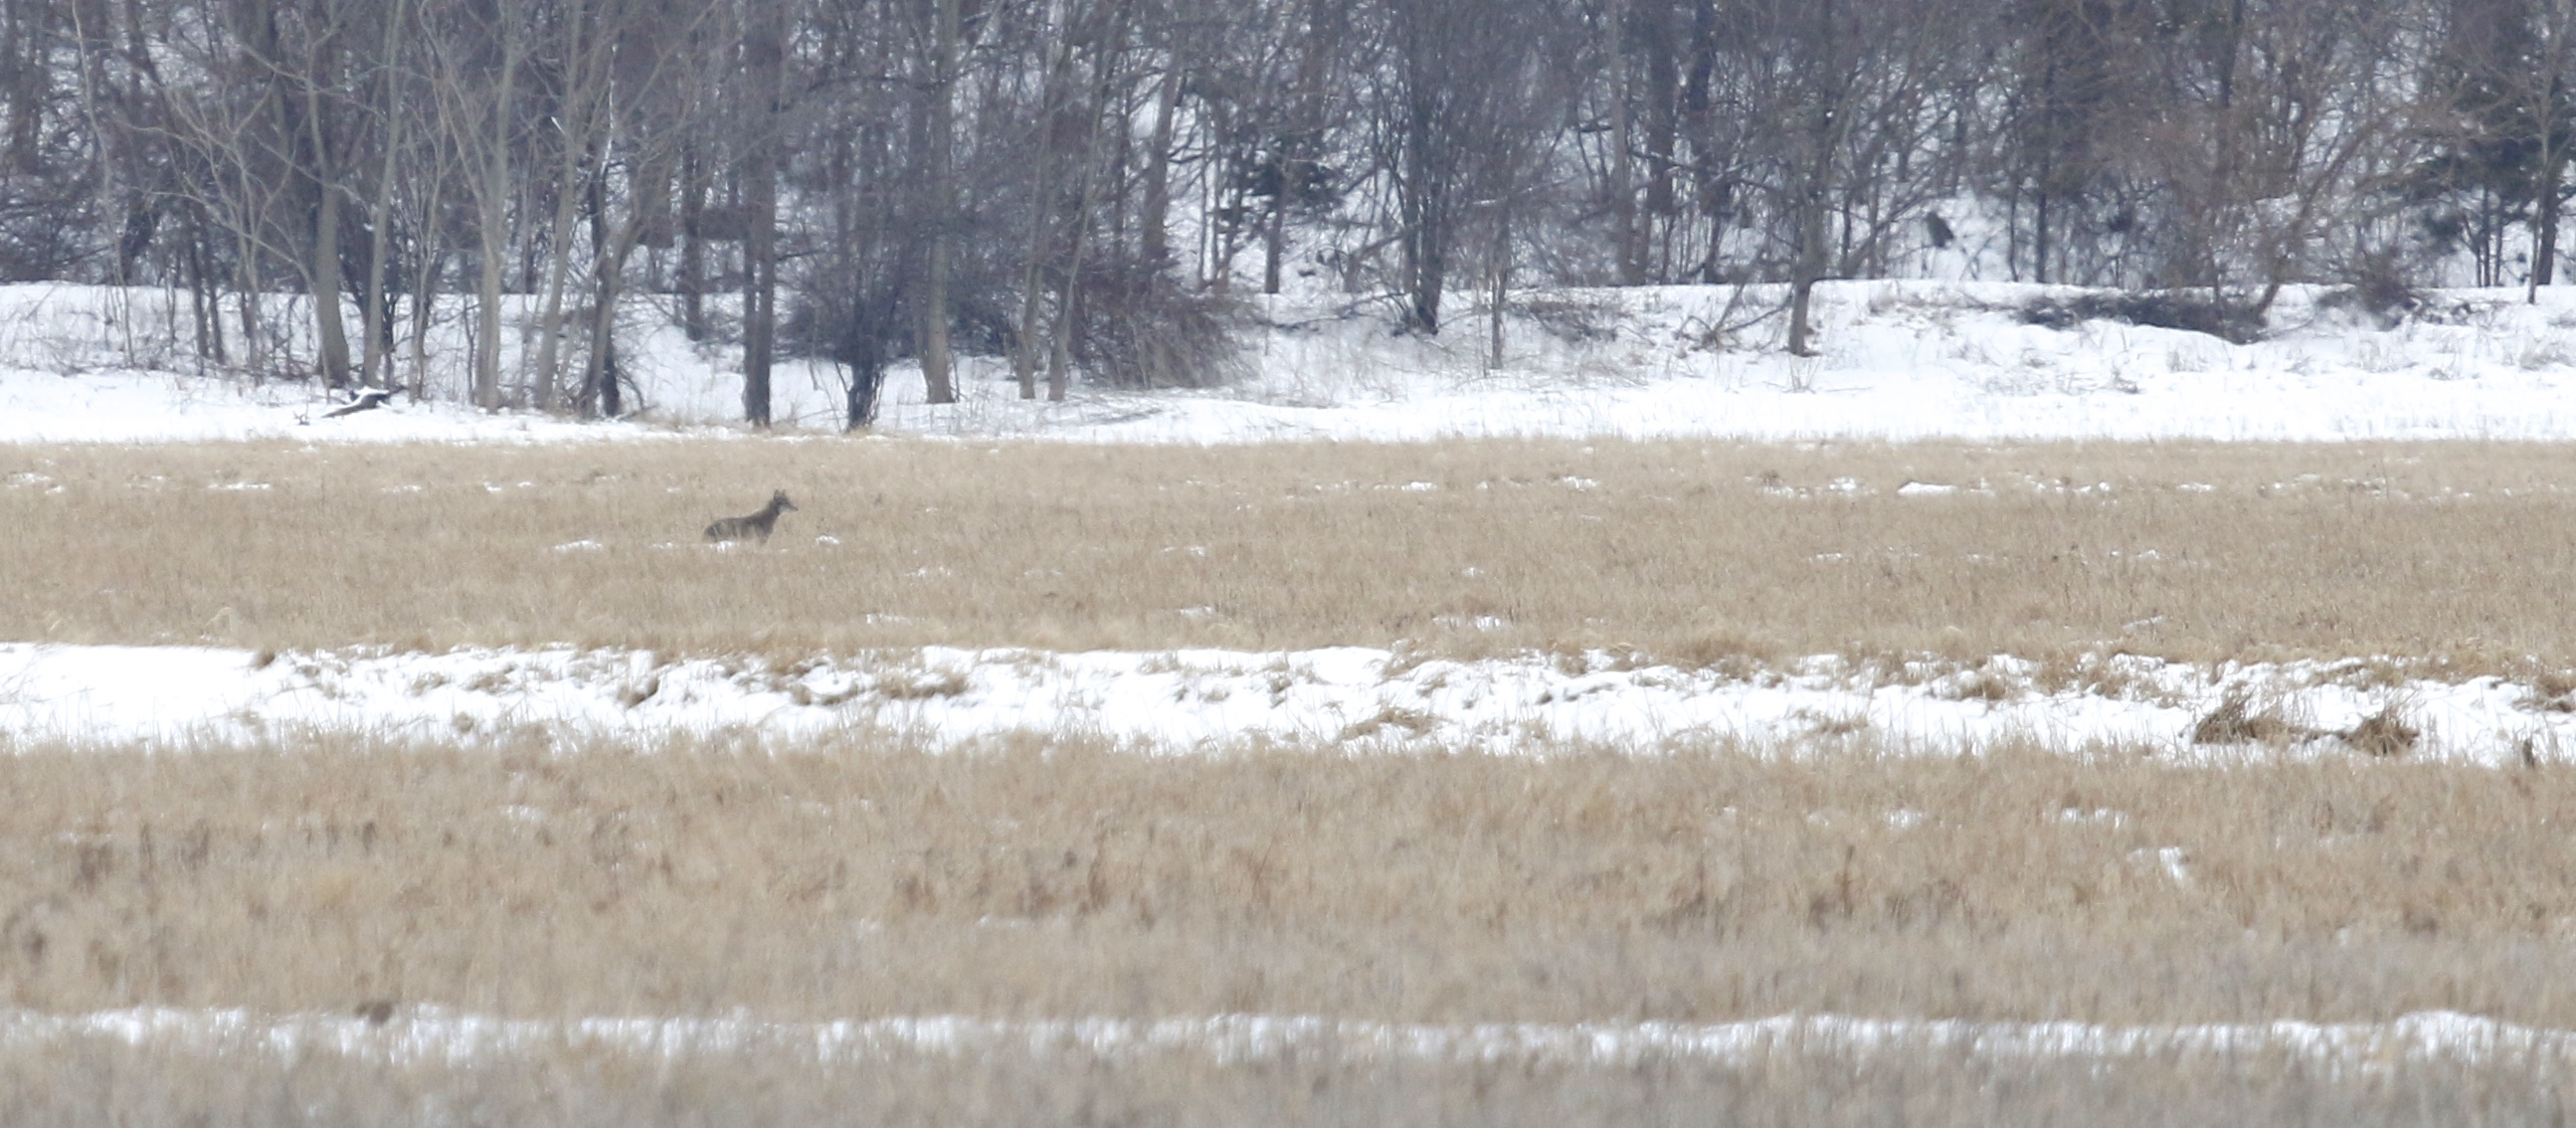 ~Coyote across the street from Scenic Farm Golf Course in Pine Island, NY 3/21/15.~